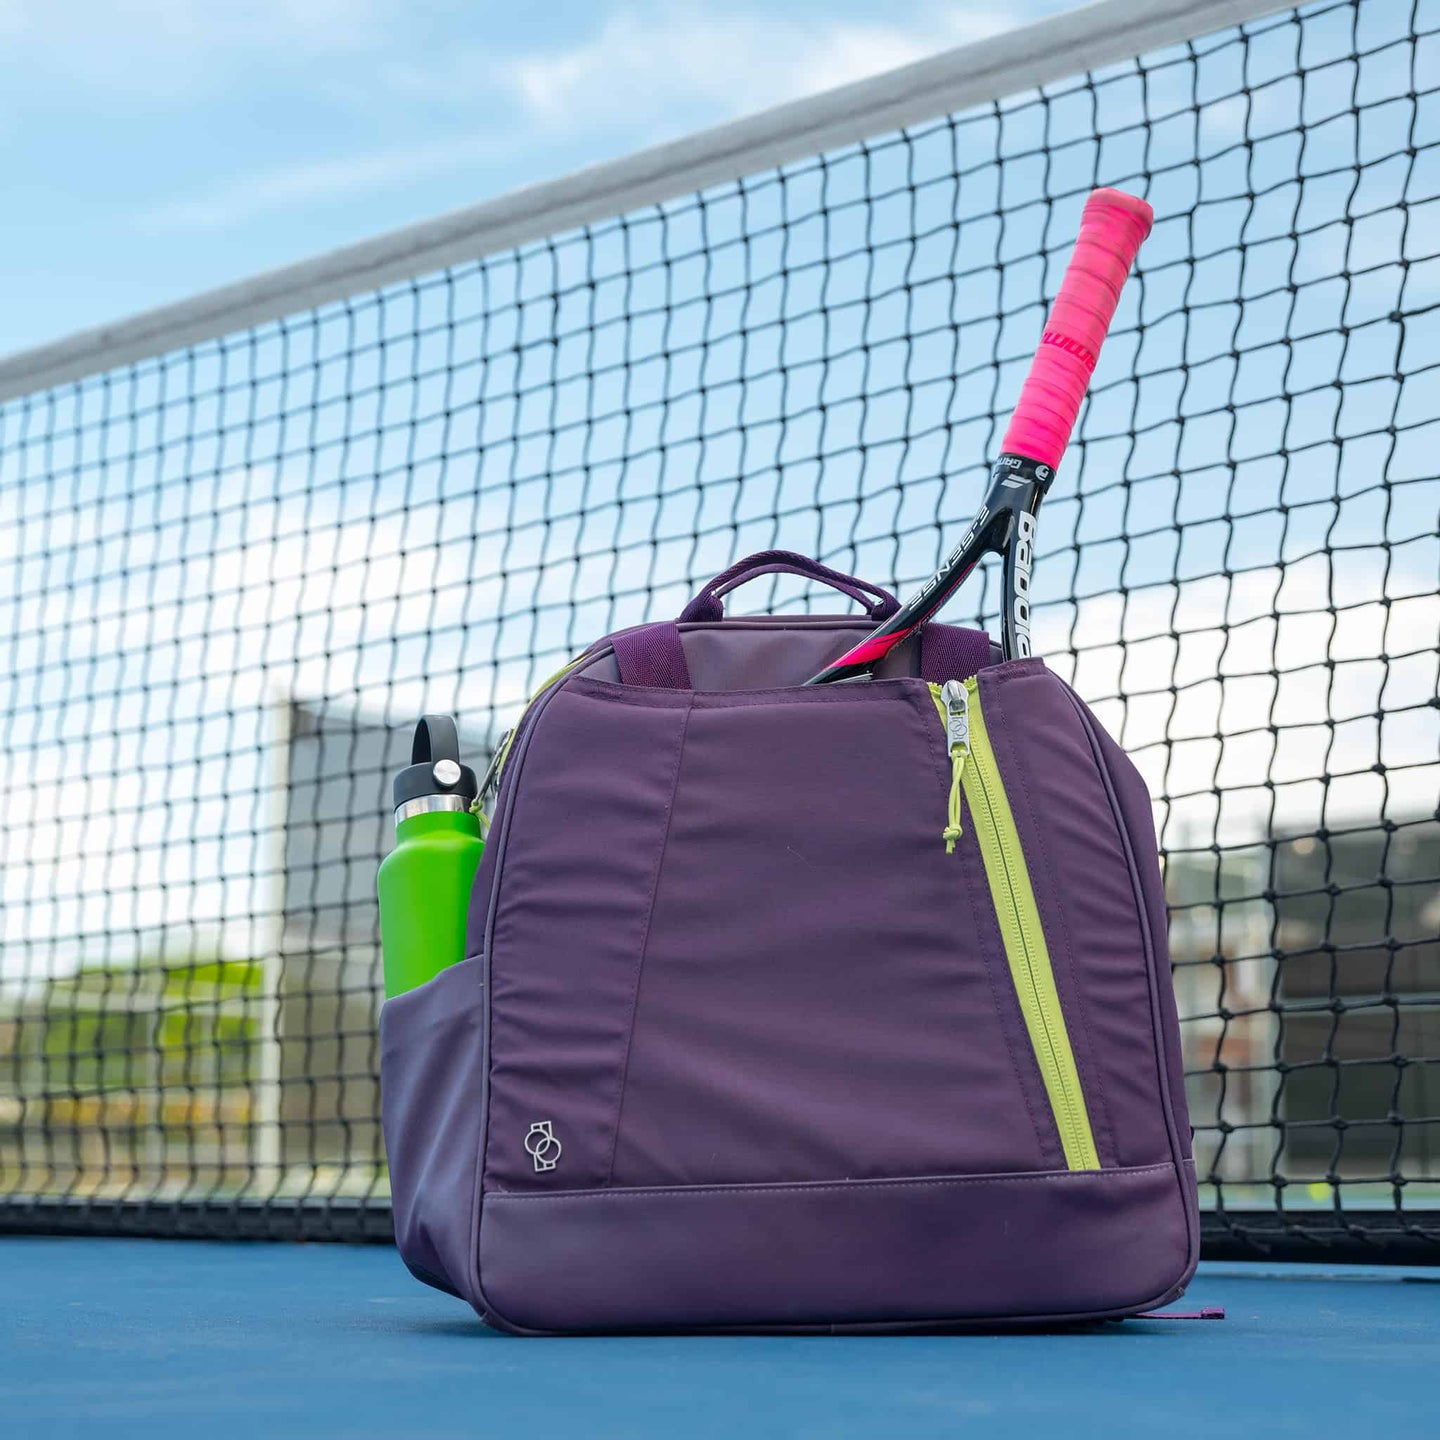 Doubletake tennis bag on the court